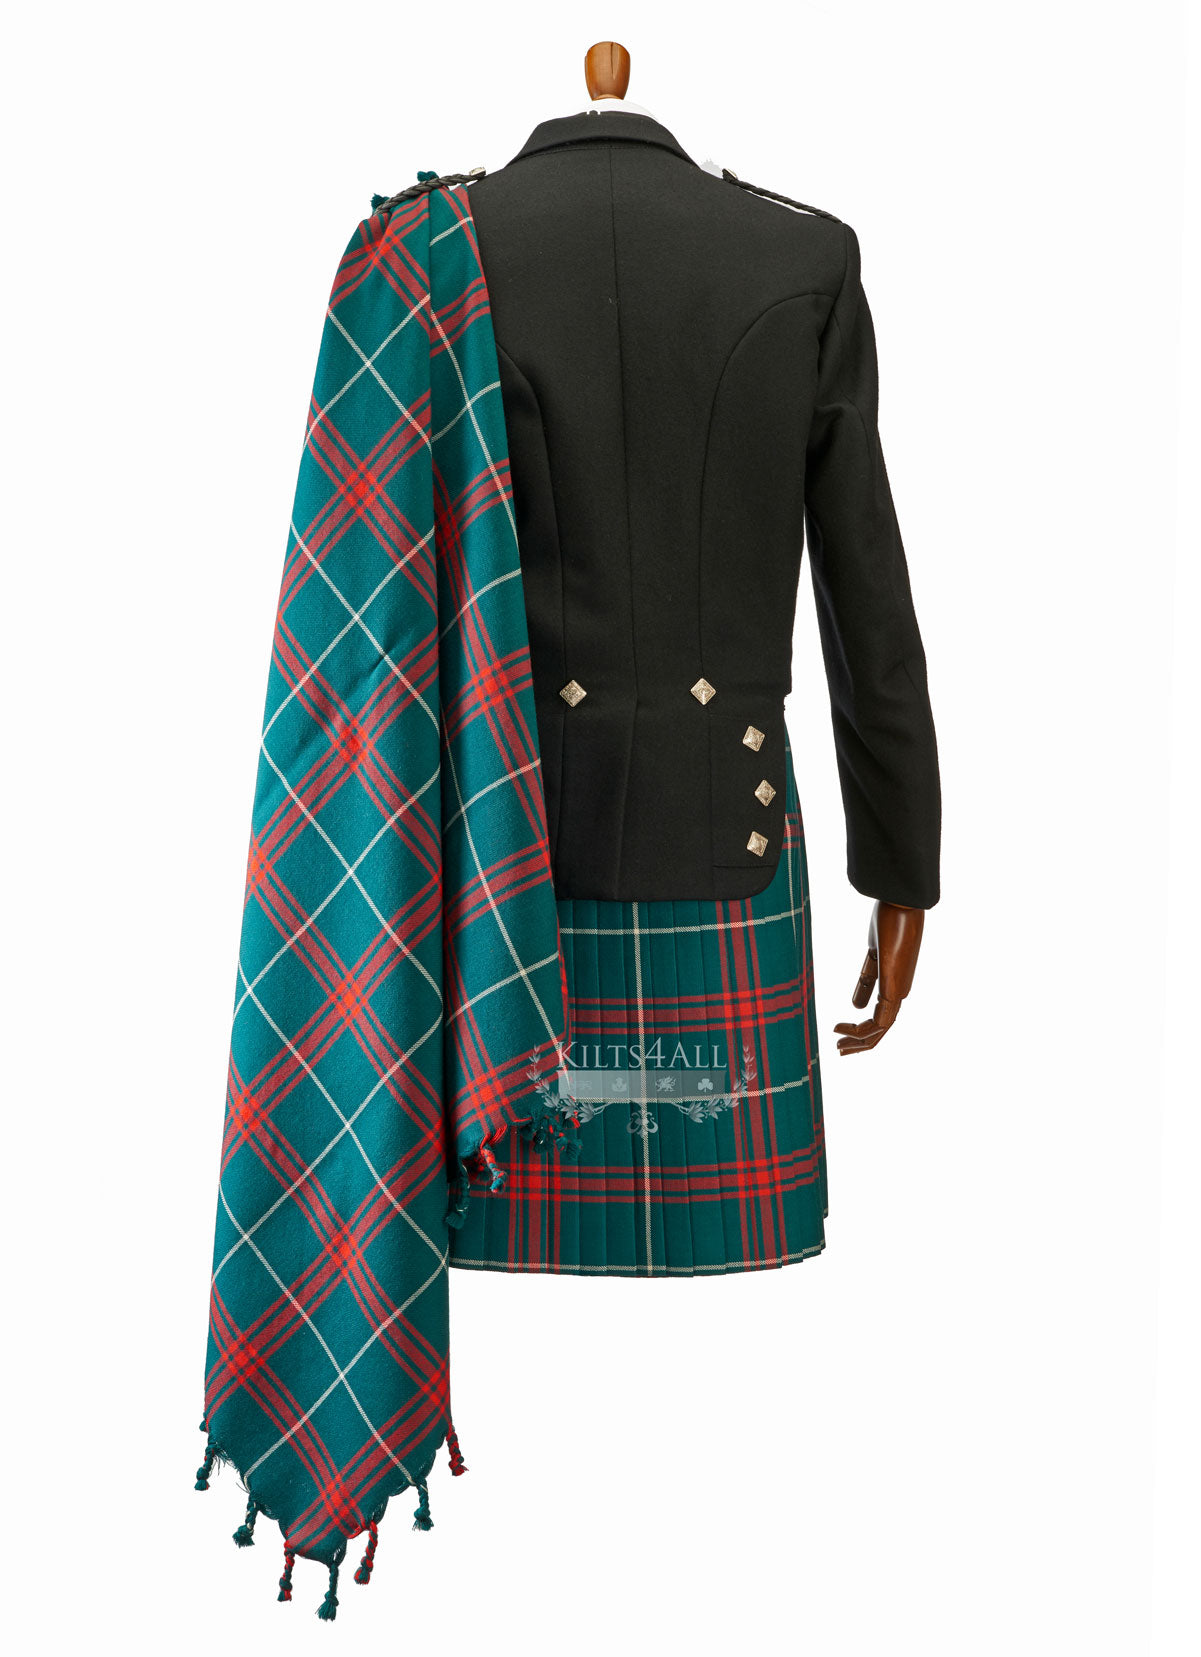 Mens Welsh National Tartan Kilt Outfit to Hire - Traditional Black Argyll Jacket & Waistcoat